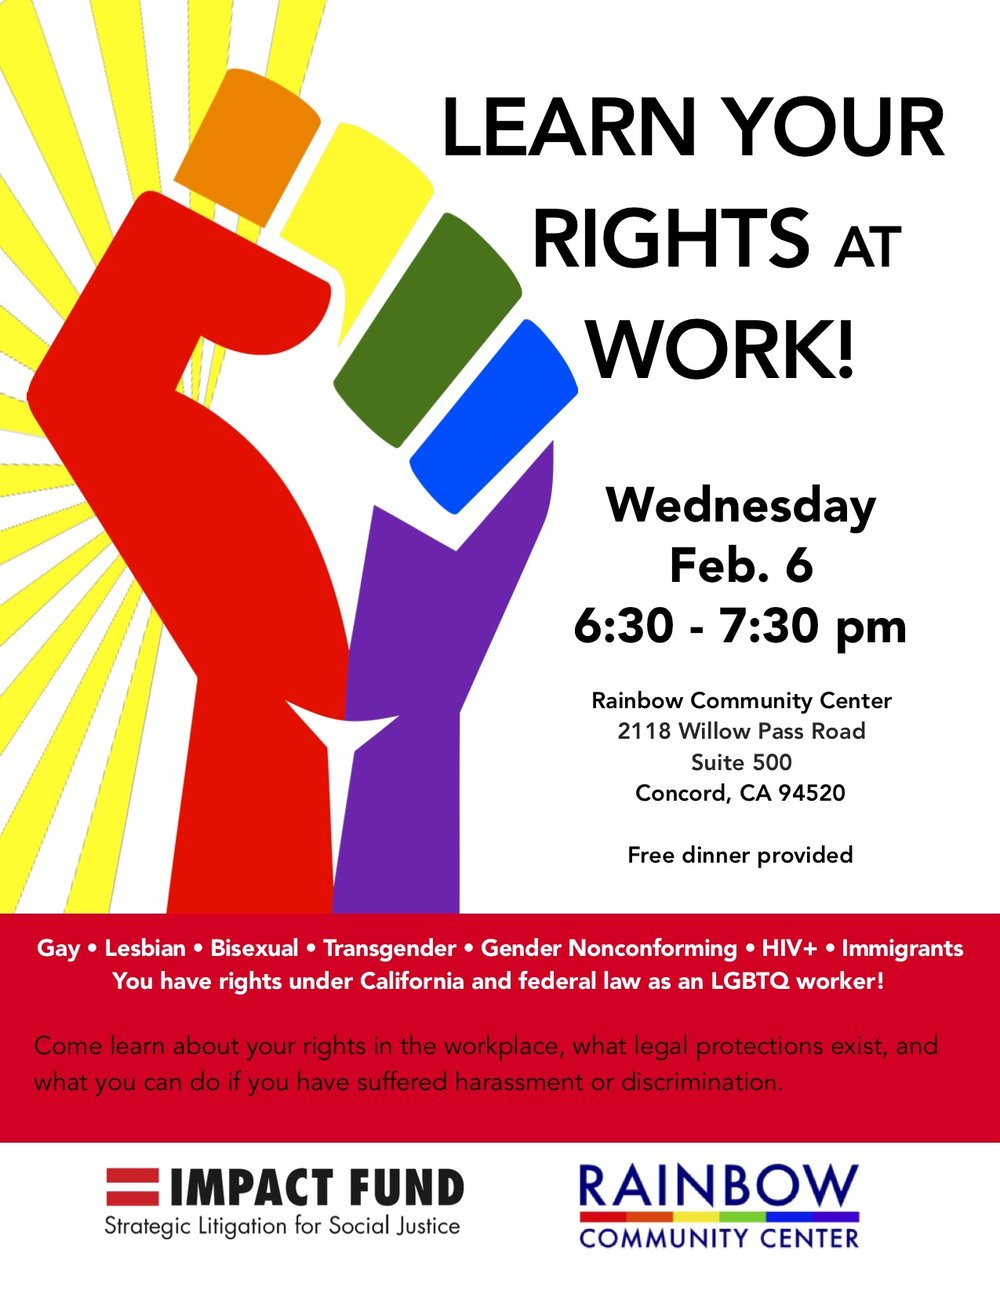 Know Your Rights Training - Oasis will be hosting a labor rights information workshop at the Rainbow Community Center in Concord on February 6. All Oasis clients are invited, but note that the workshop will be led in English only. Free dinner will be provided!